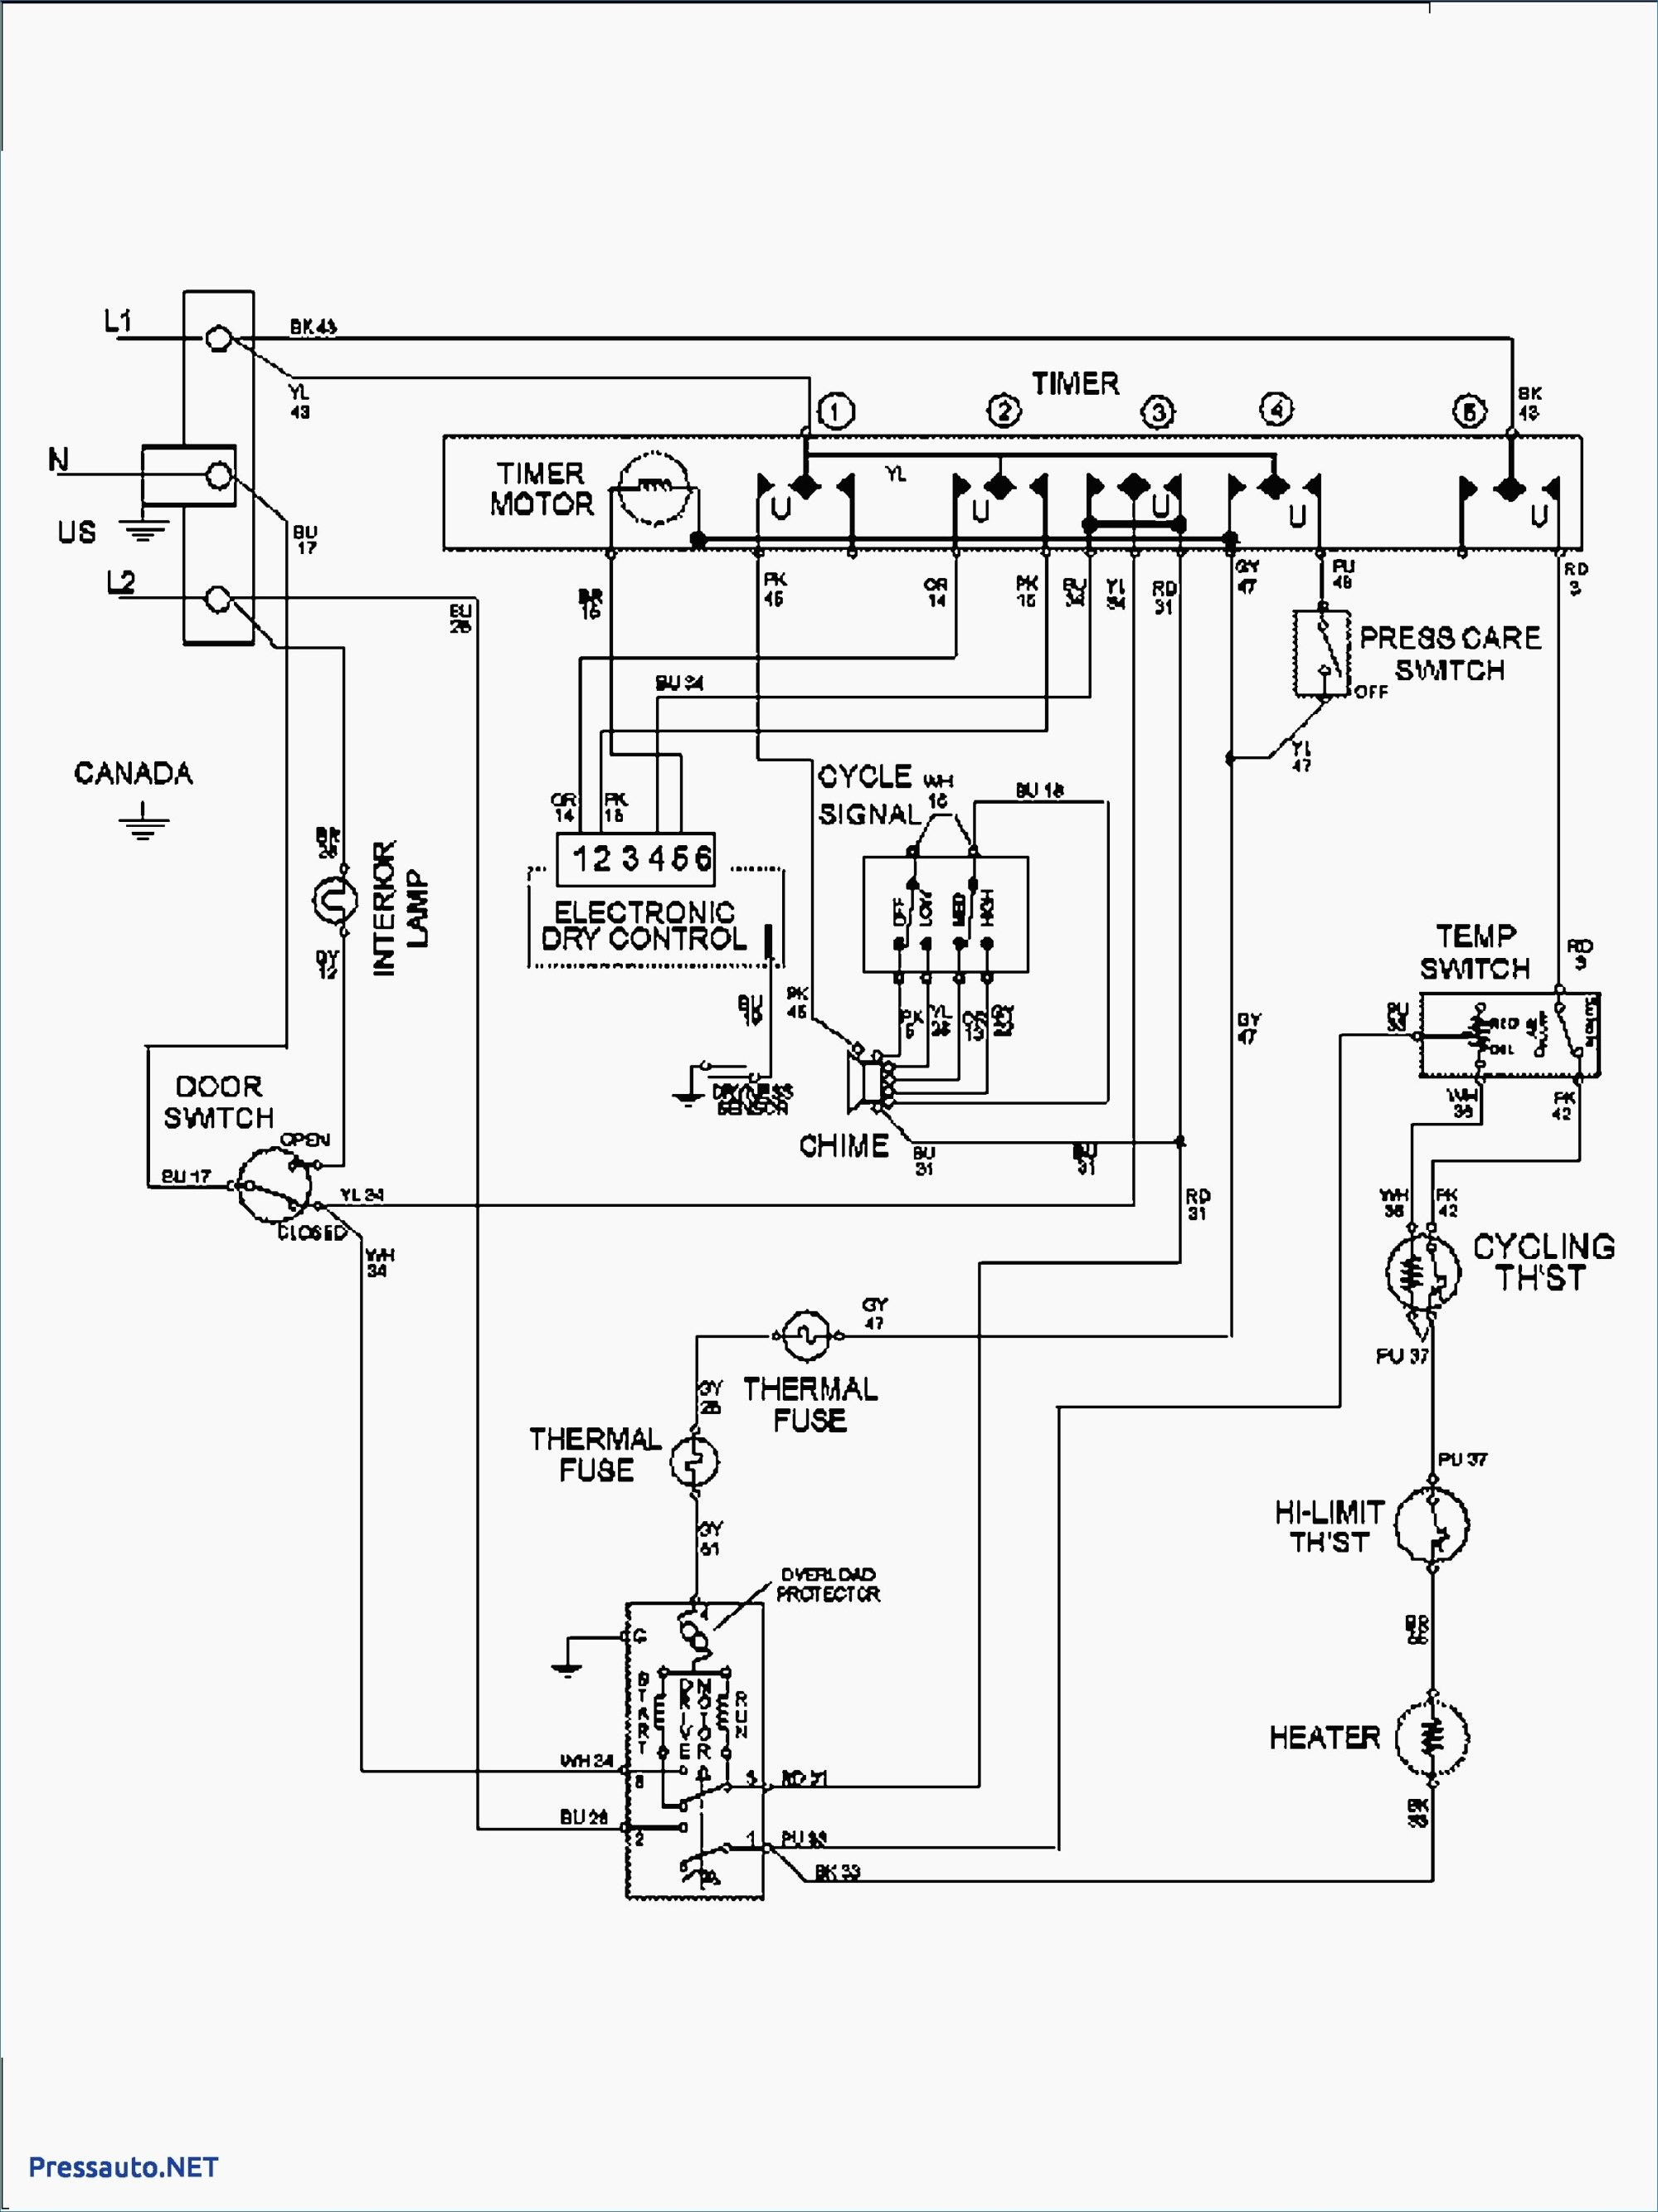 hight resolution of duet dryer wiring diagram wiring diagram schematic whirlpool duet dryer heating element wiring diagram duet dryer wiring diagram